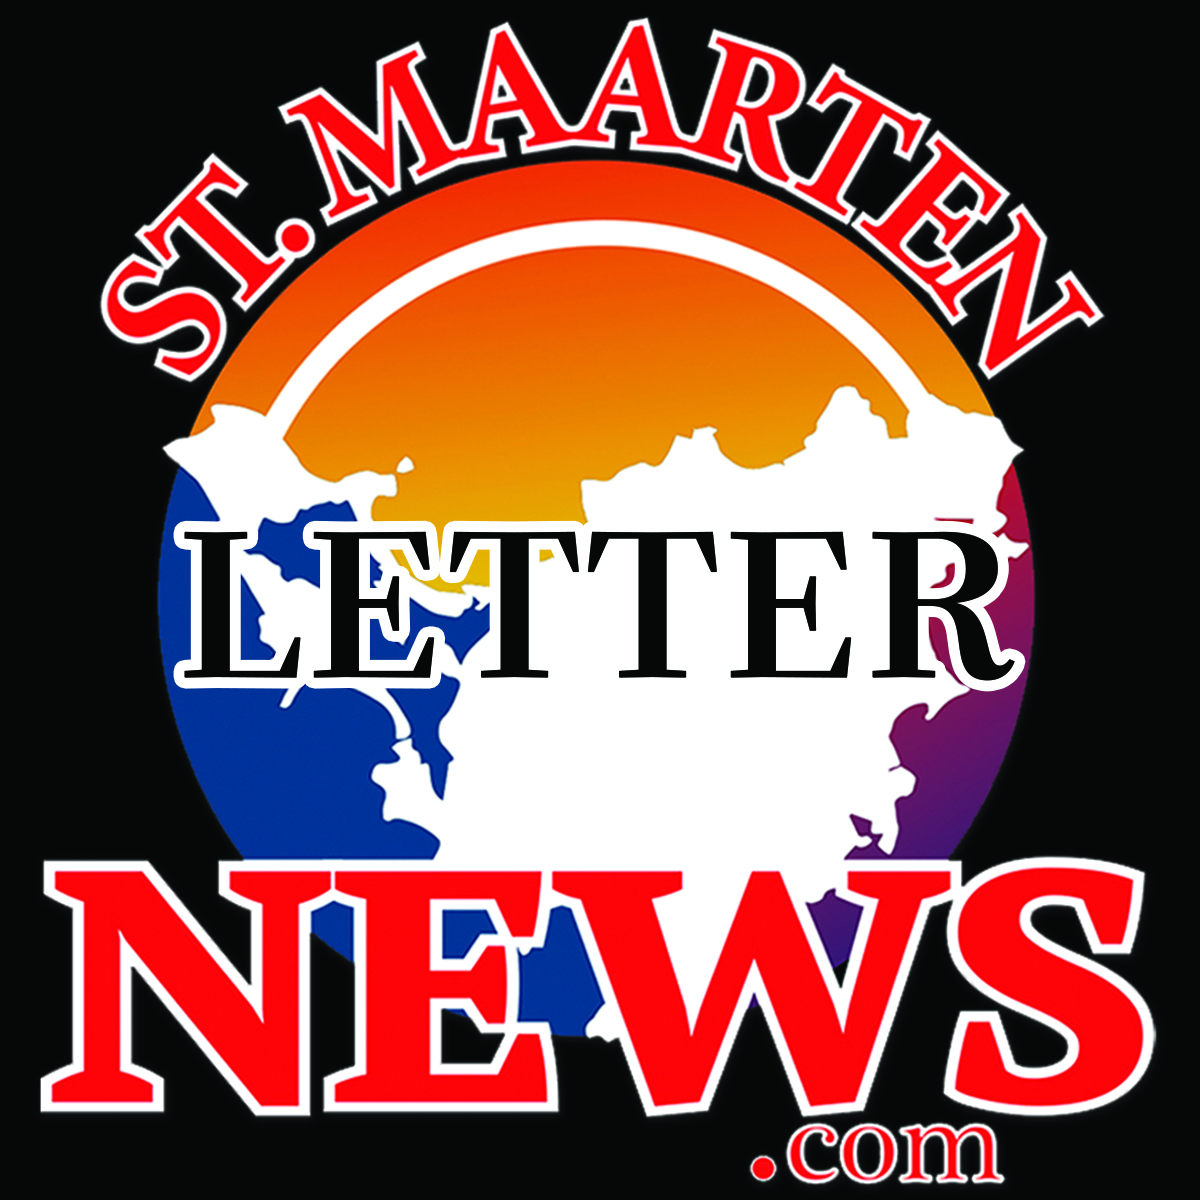 Letter - St Maarten News - People